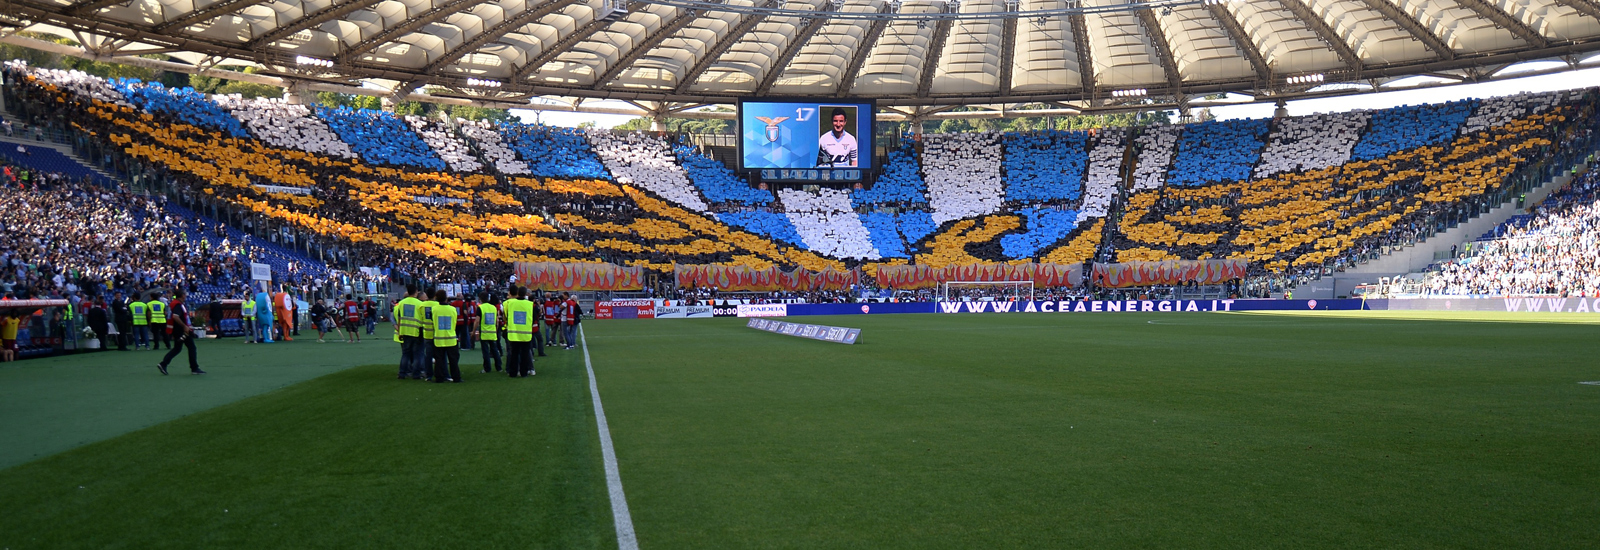 Lazio fans display a stunning eagle tifo ahead of the Rome derby against AS Roma in their penultimate Serie A match of the 2014-15 season.